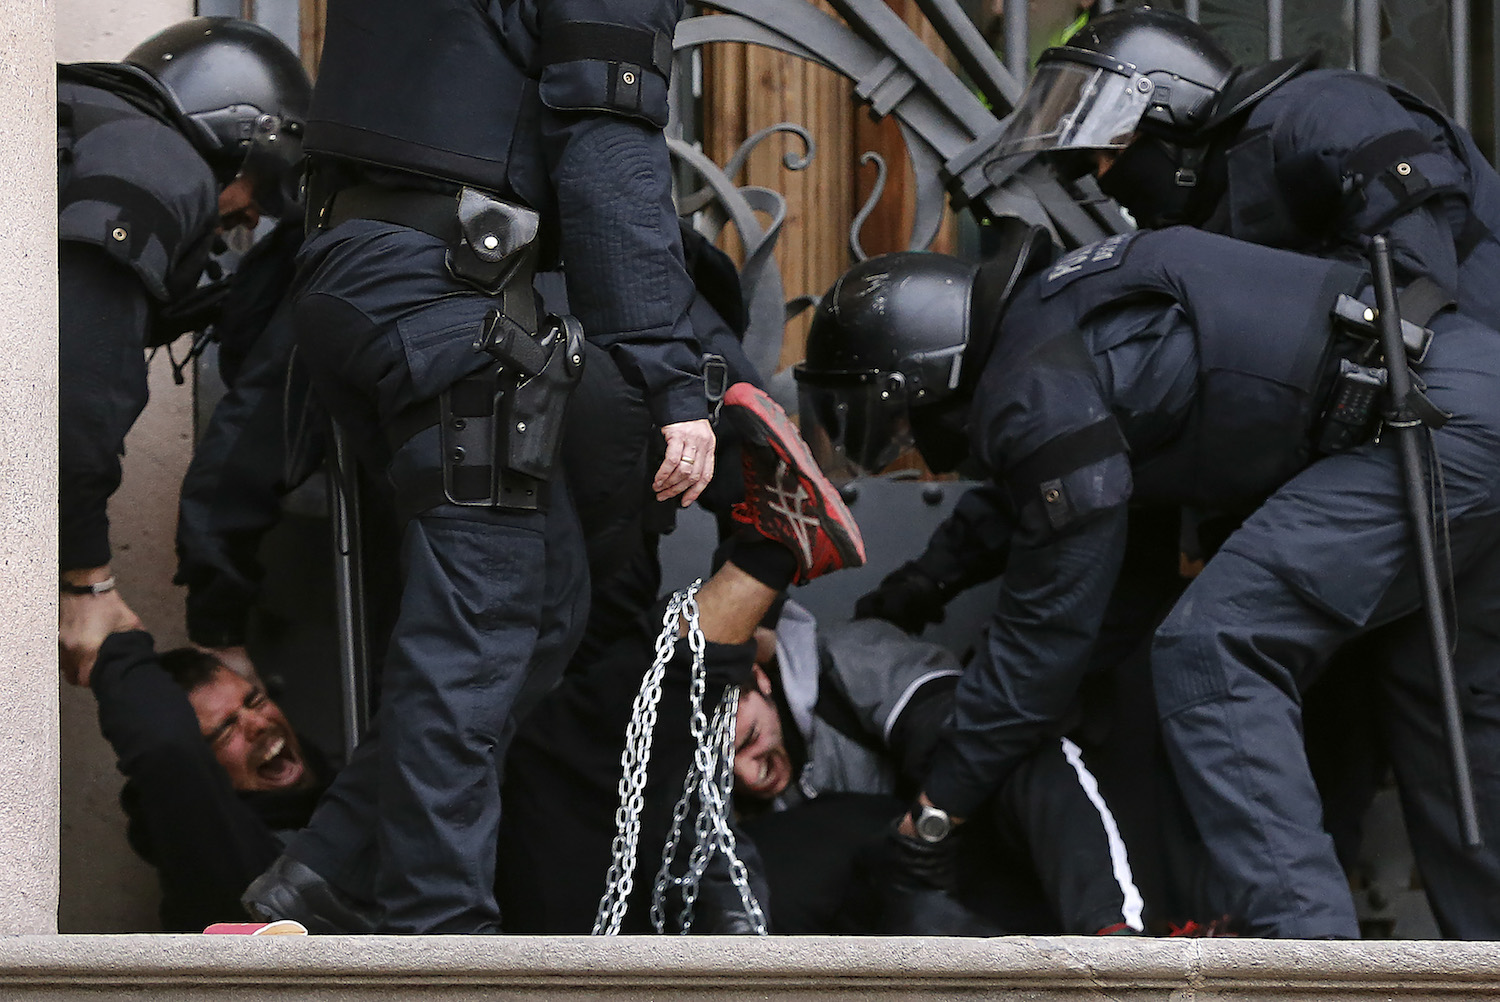 Catalan regional police officers (Mossos d'Esquadra) remove two chained men during a protest called by the 'Commitees in defence of the Republic' to block the TSJC (Superior Court of Justice of Catalonia) in Barcelona on February 23, 2017. / AFP PHOTO / PAU BARRENA        (Photo credit should read PAU BARRENA/AFP/Getty Images)